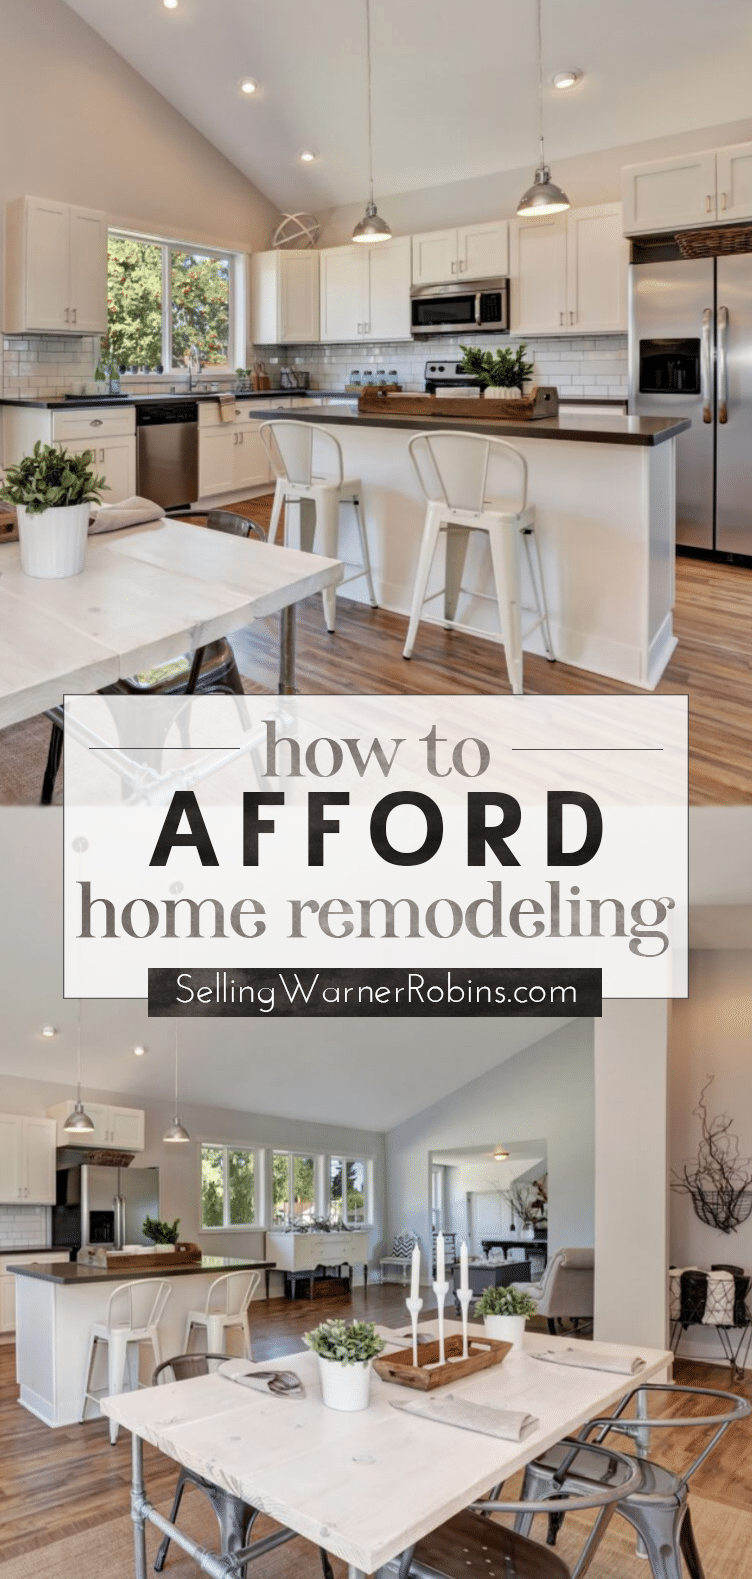 How to Afford Home Remodeling